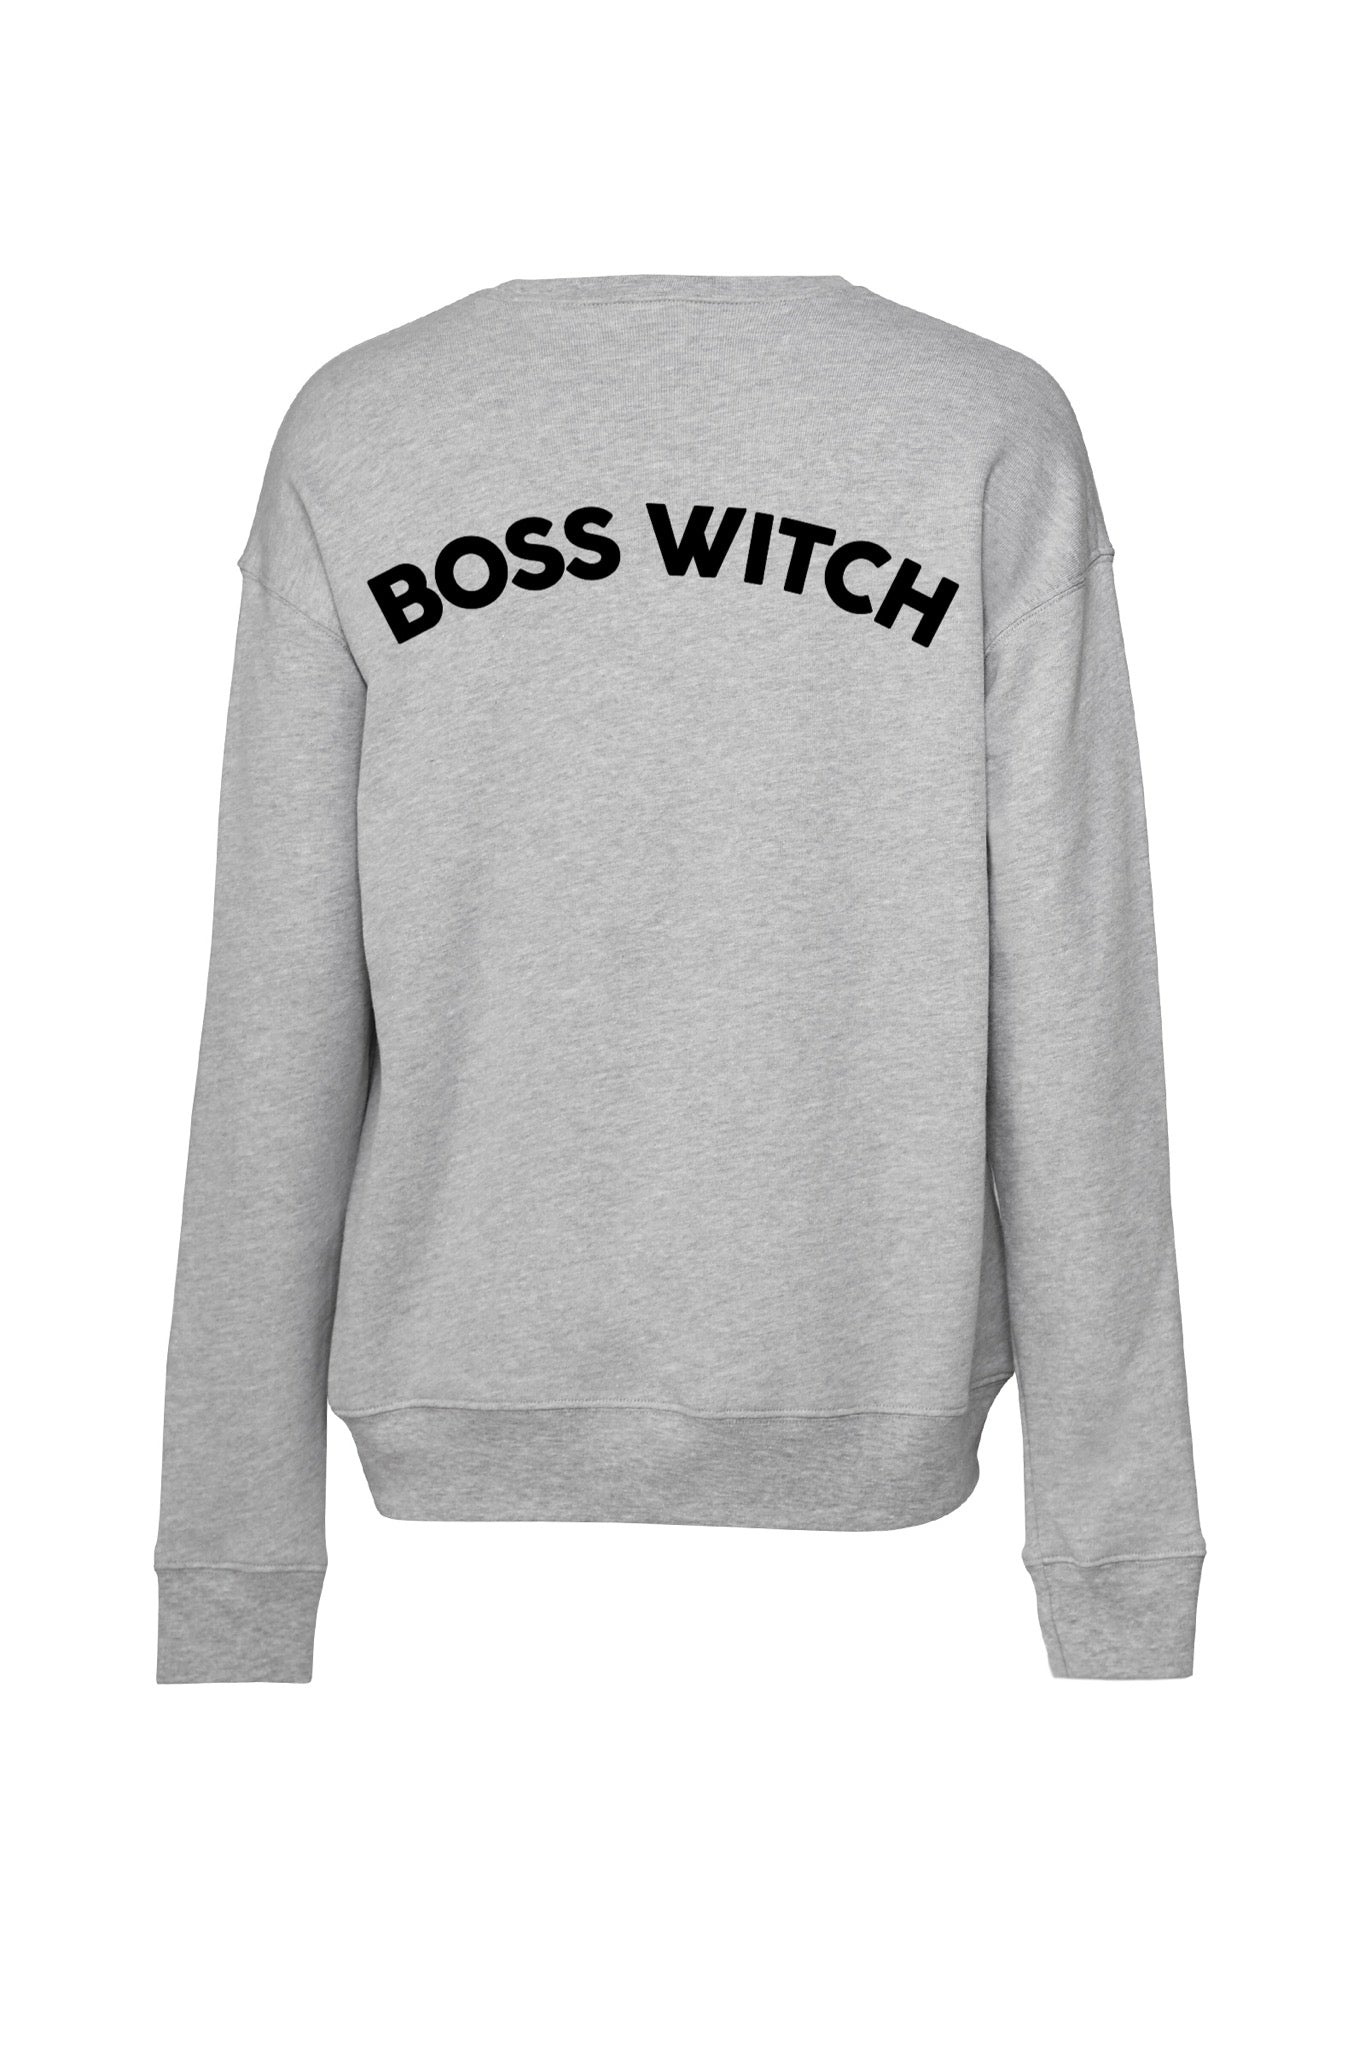 """Boss Witch"" Unisex Drop-Shoulder Sweatshirt"